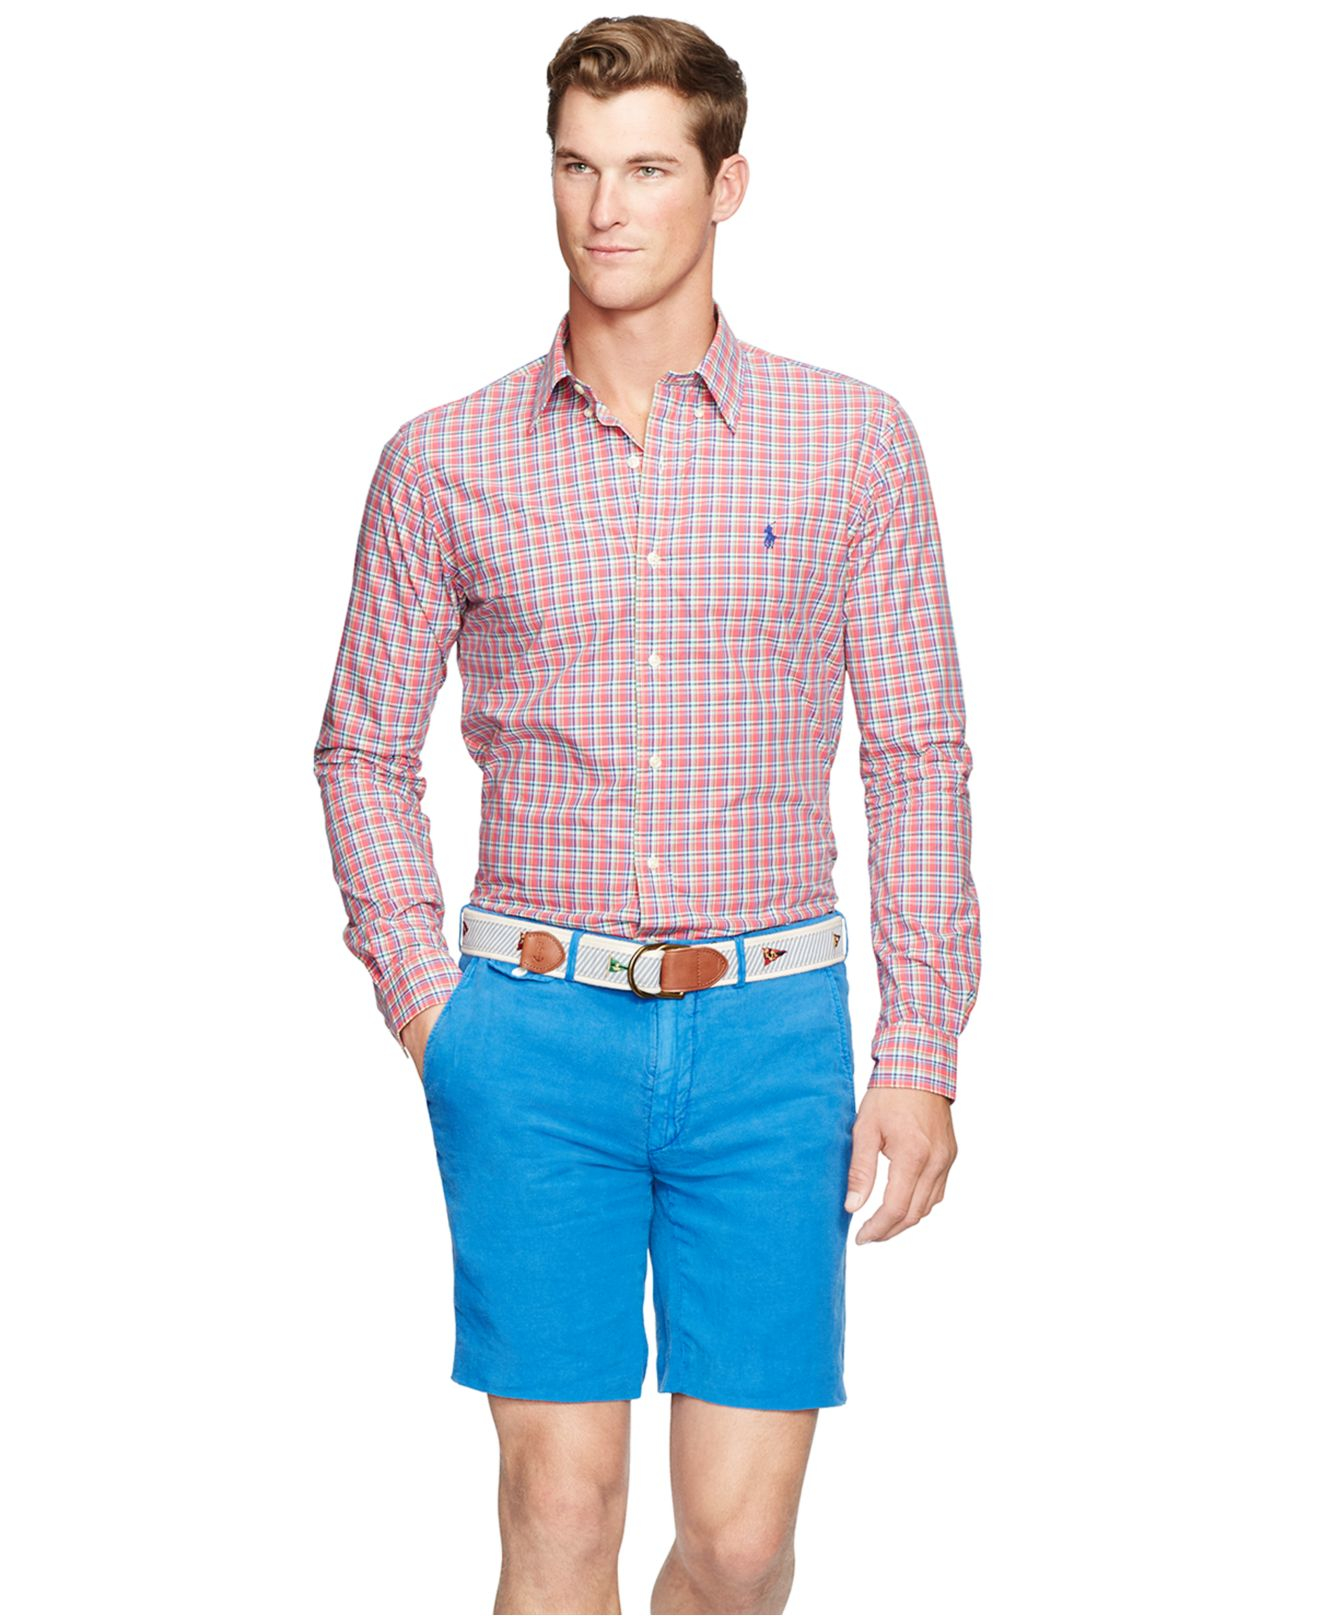 968ff9fcb0d ... promo code for lyst polo ralph lauren mens long sleeve checked poplin  shirt in 735f2 ff575